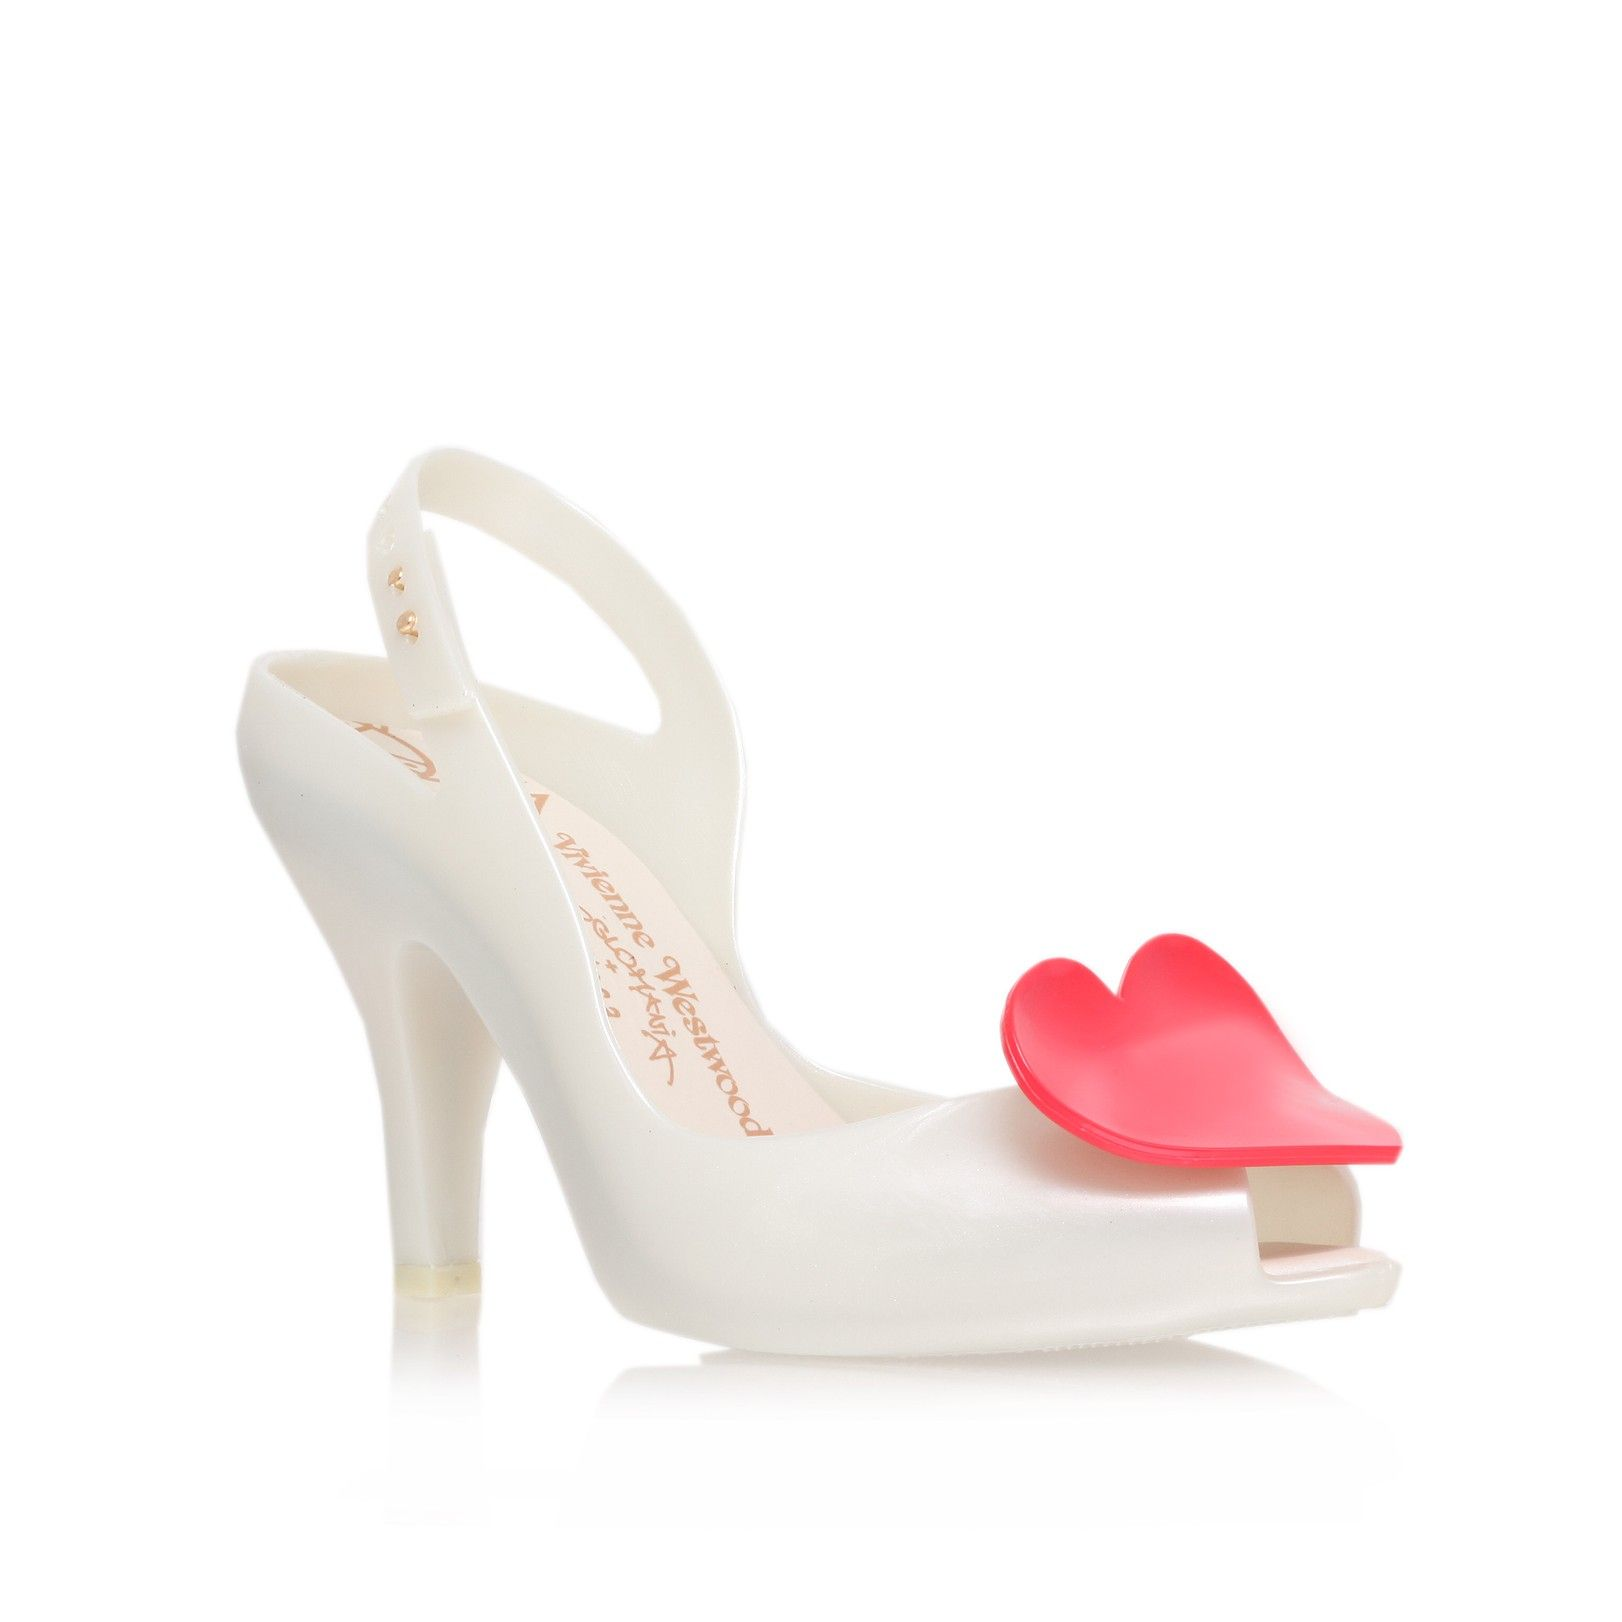 Vivienne Westwood Lady Dragon Heart Heeled Shoes 288rxlM